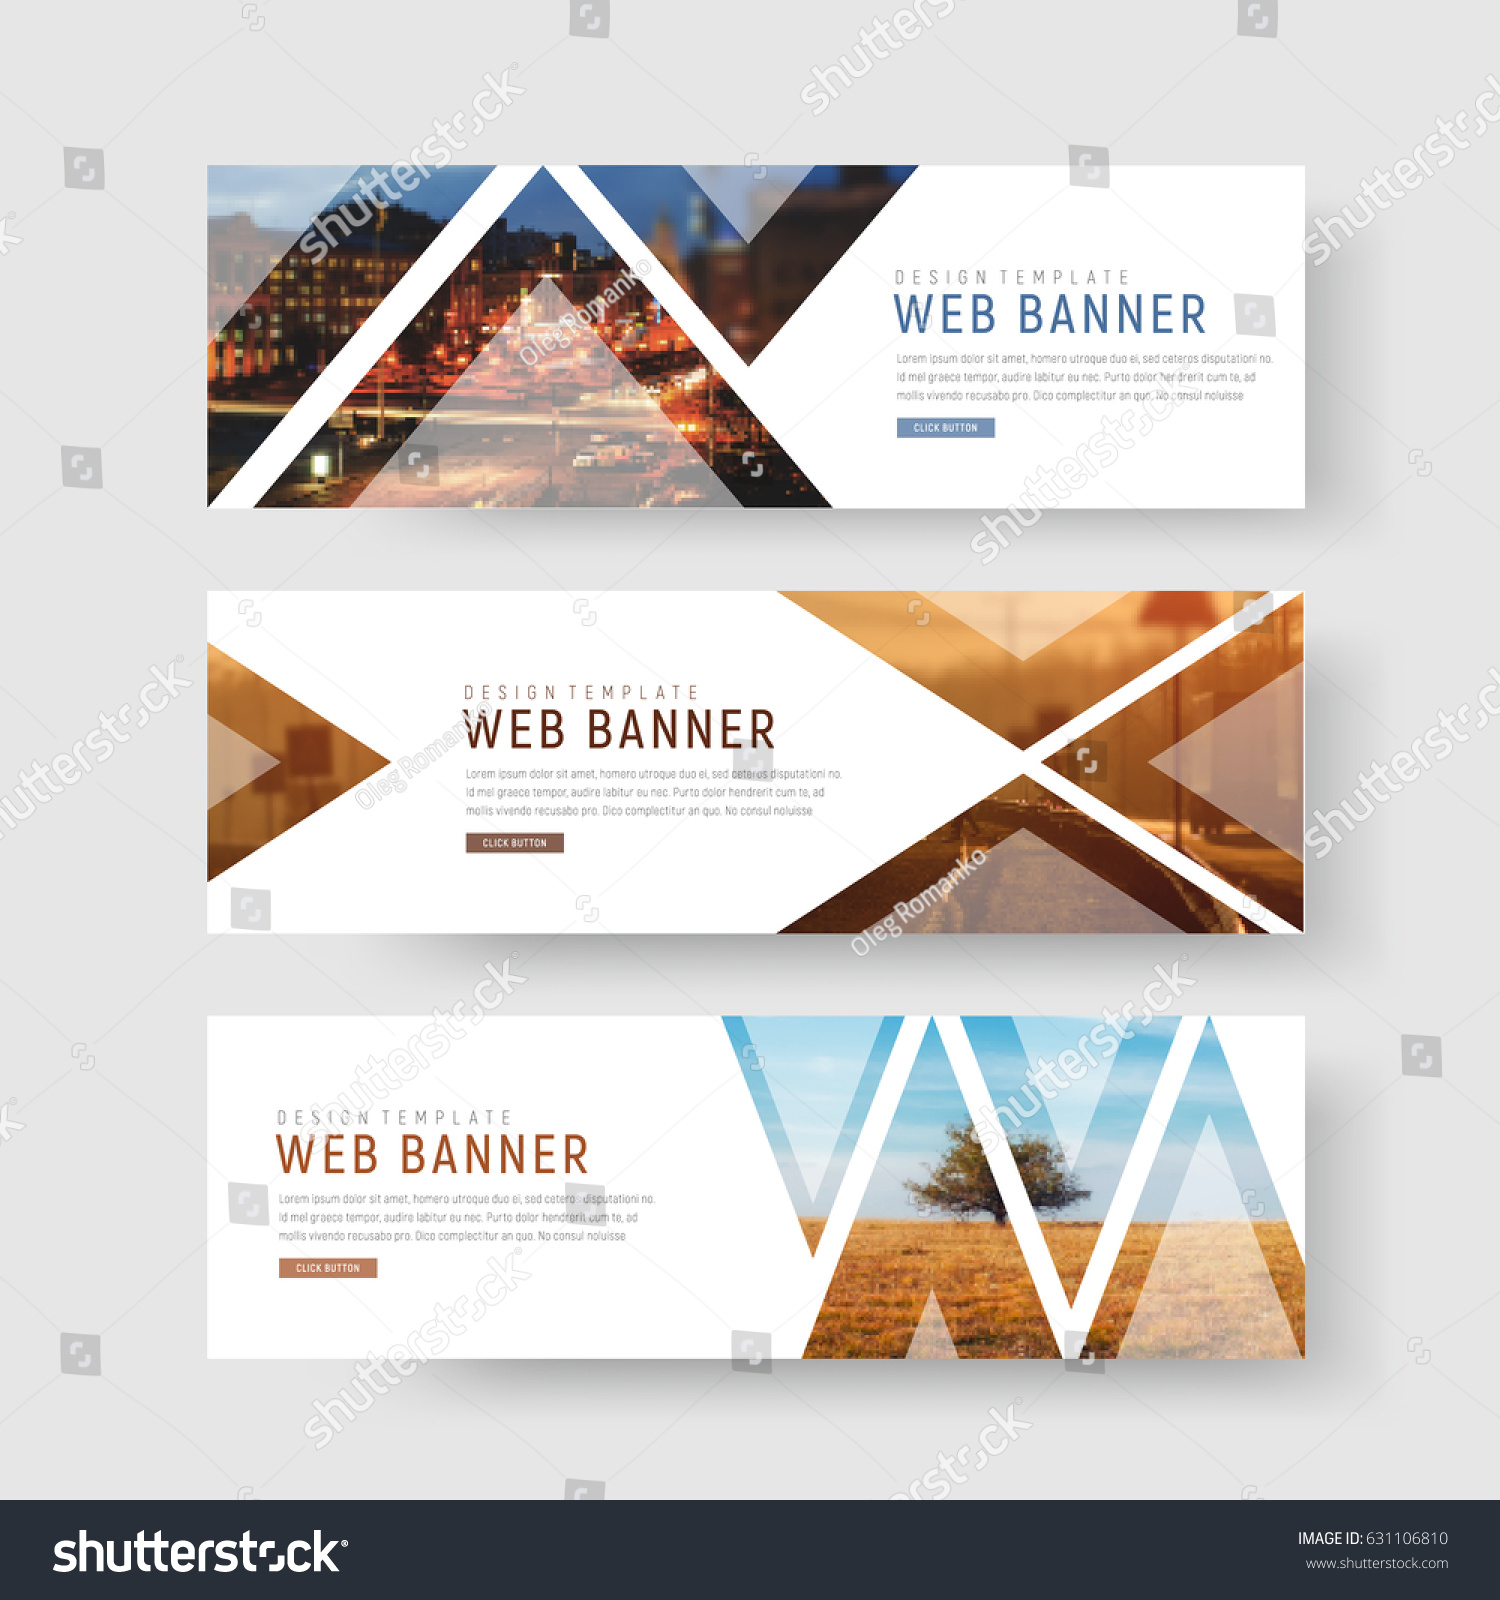 set of horizontal white banners with triangular shapes for a photo. Universal template for a web site with text, buttons and transparent elements. Photo of a mosaic for a sample. #631106810